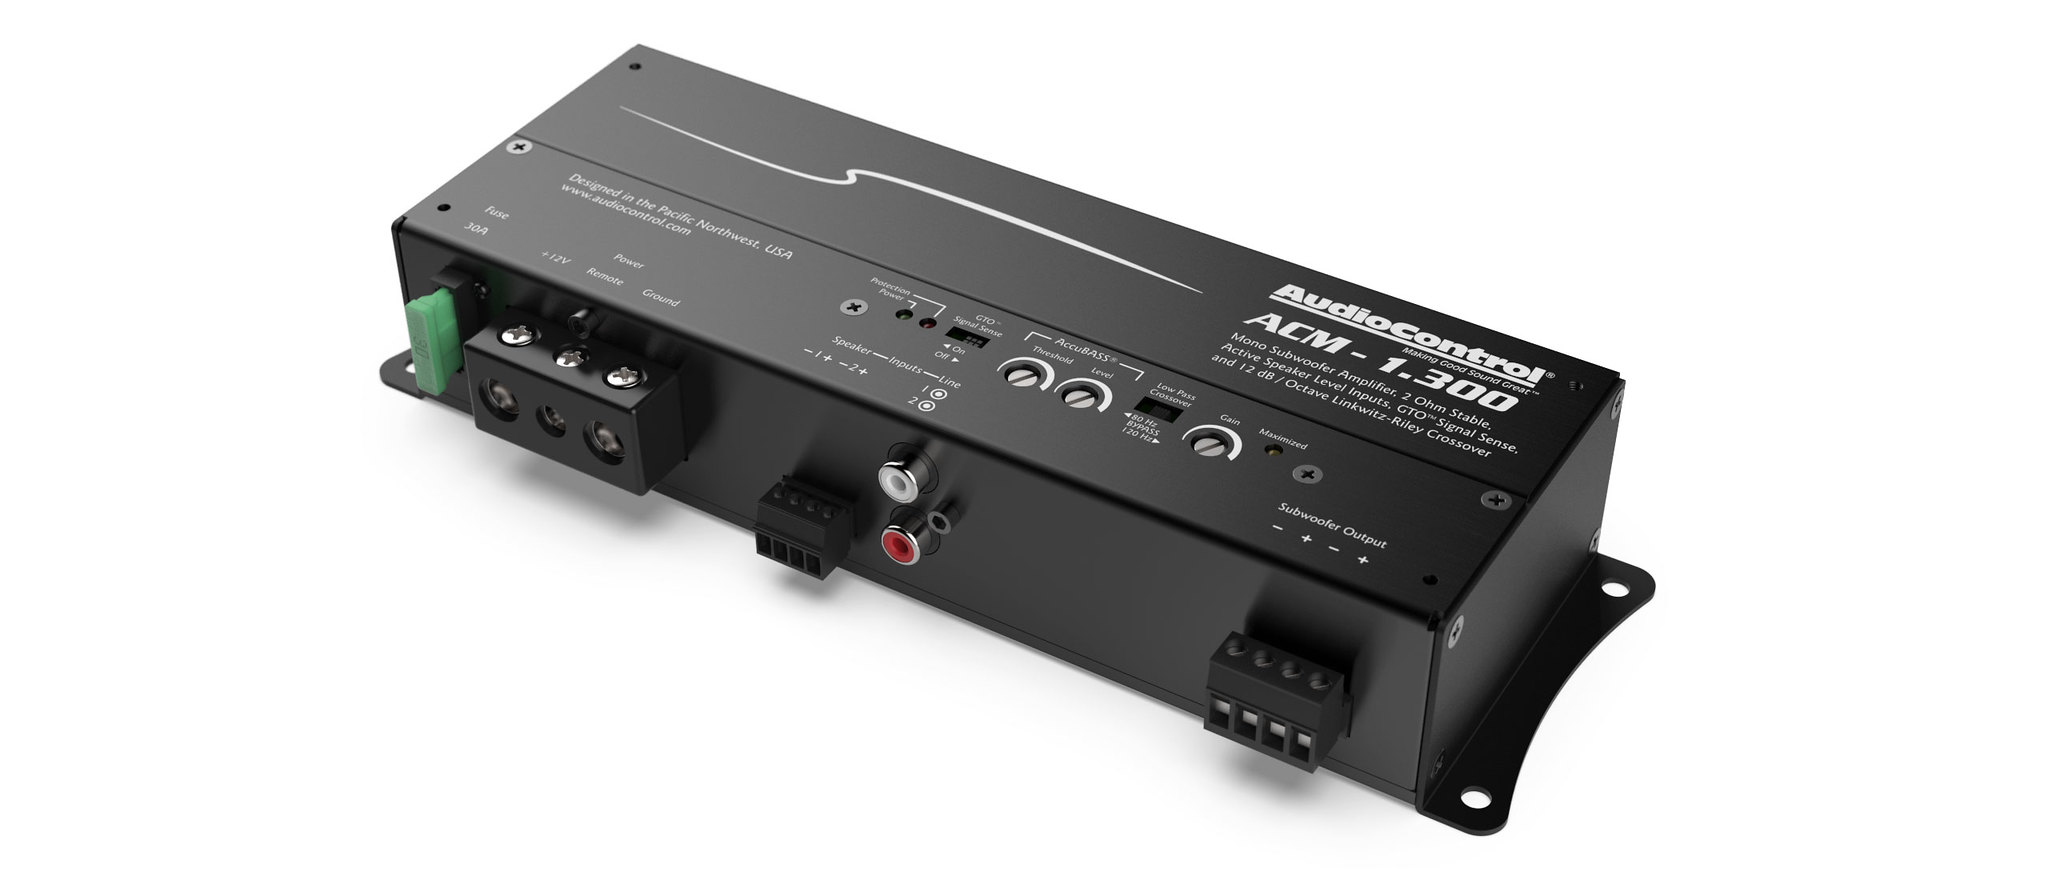 The Definitive Stereo And Subwoofer Upgrade Thread 2001 Civic Coupe Audio Sound System Circuit Diagram Factory Bass Correction This Thing Is Only 9 X 3 Perfect For A Rated 300 Watts At 2 Ohms